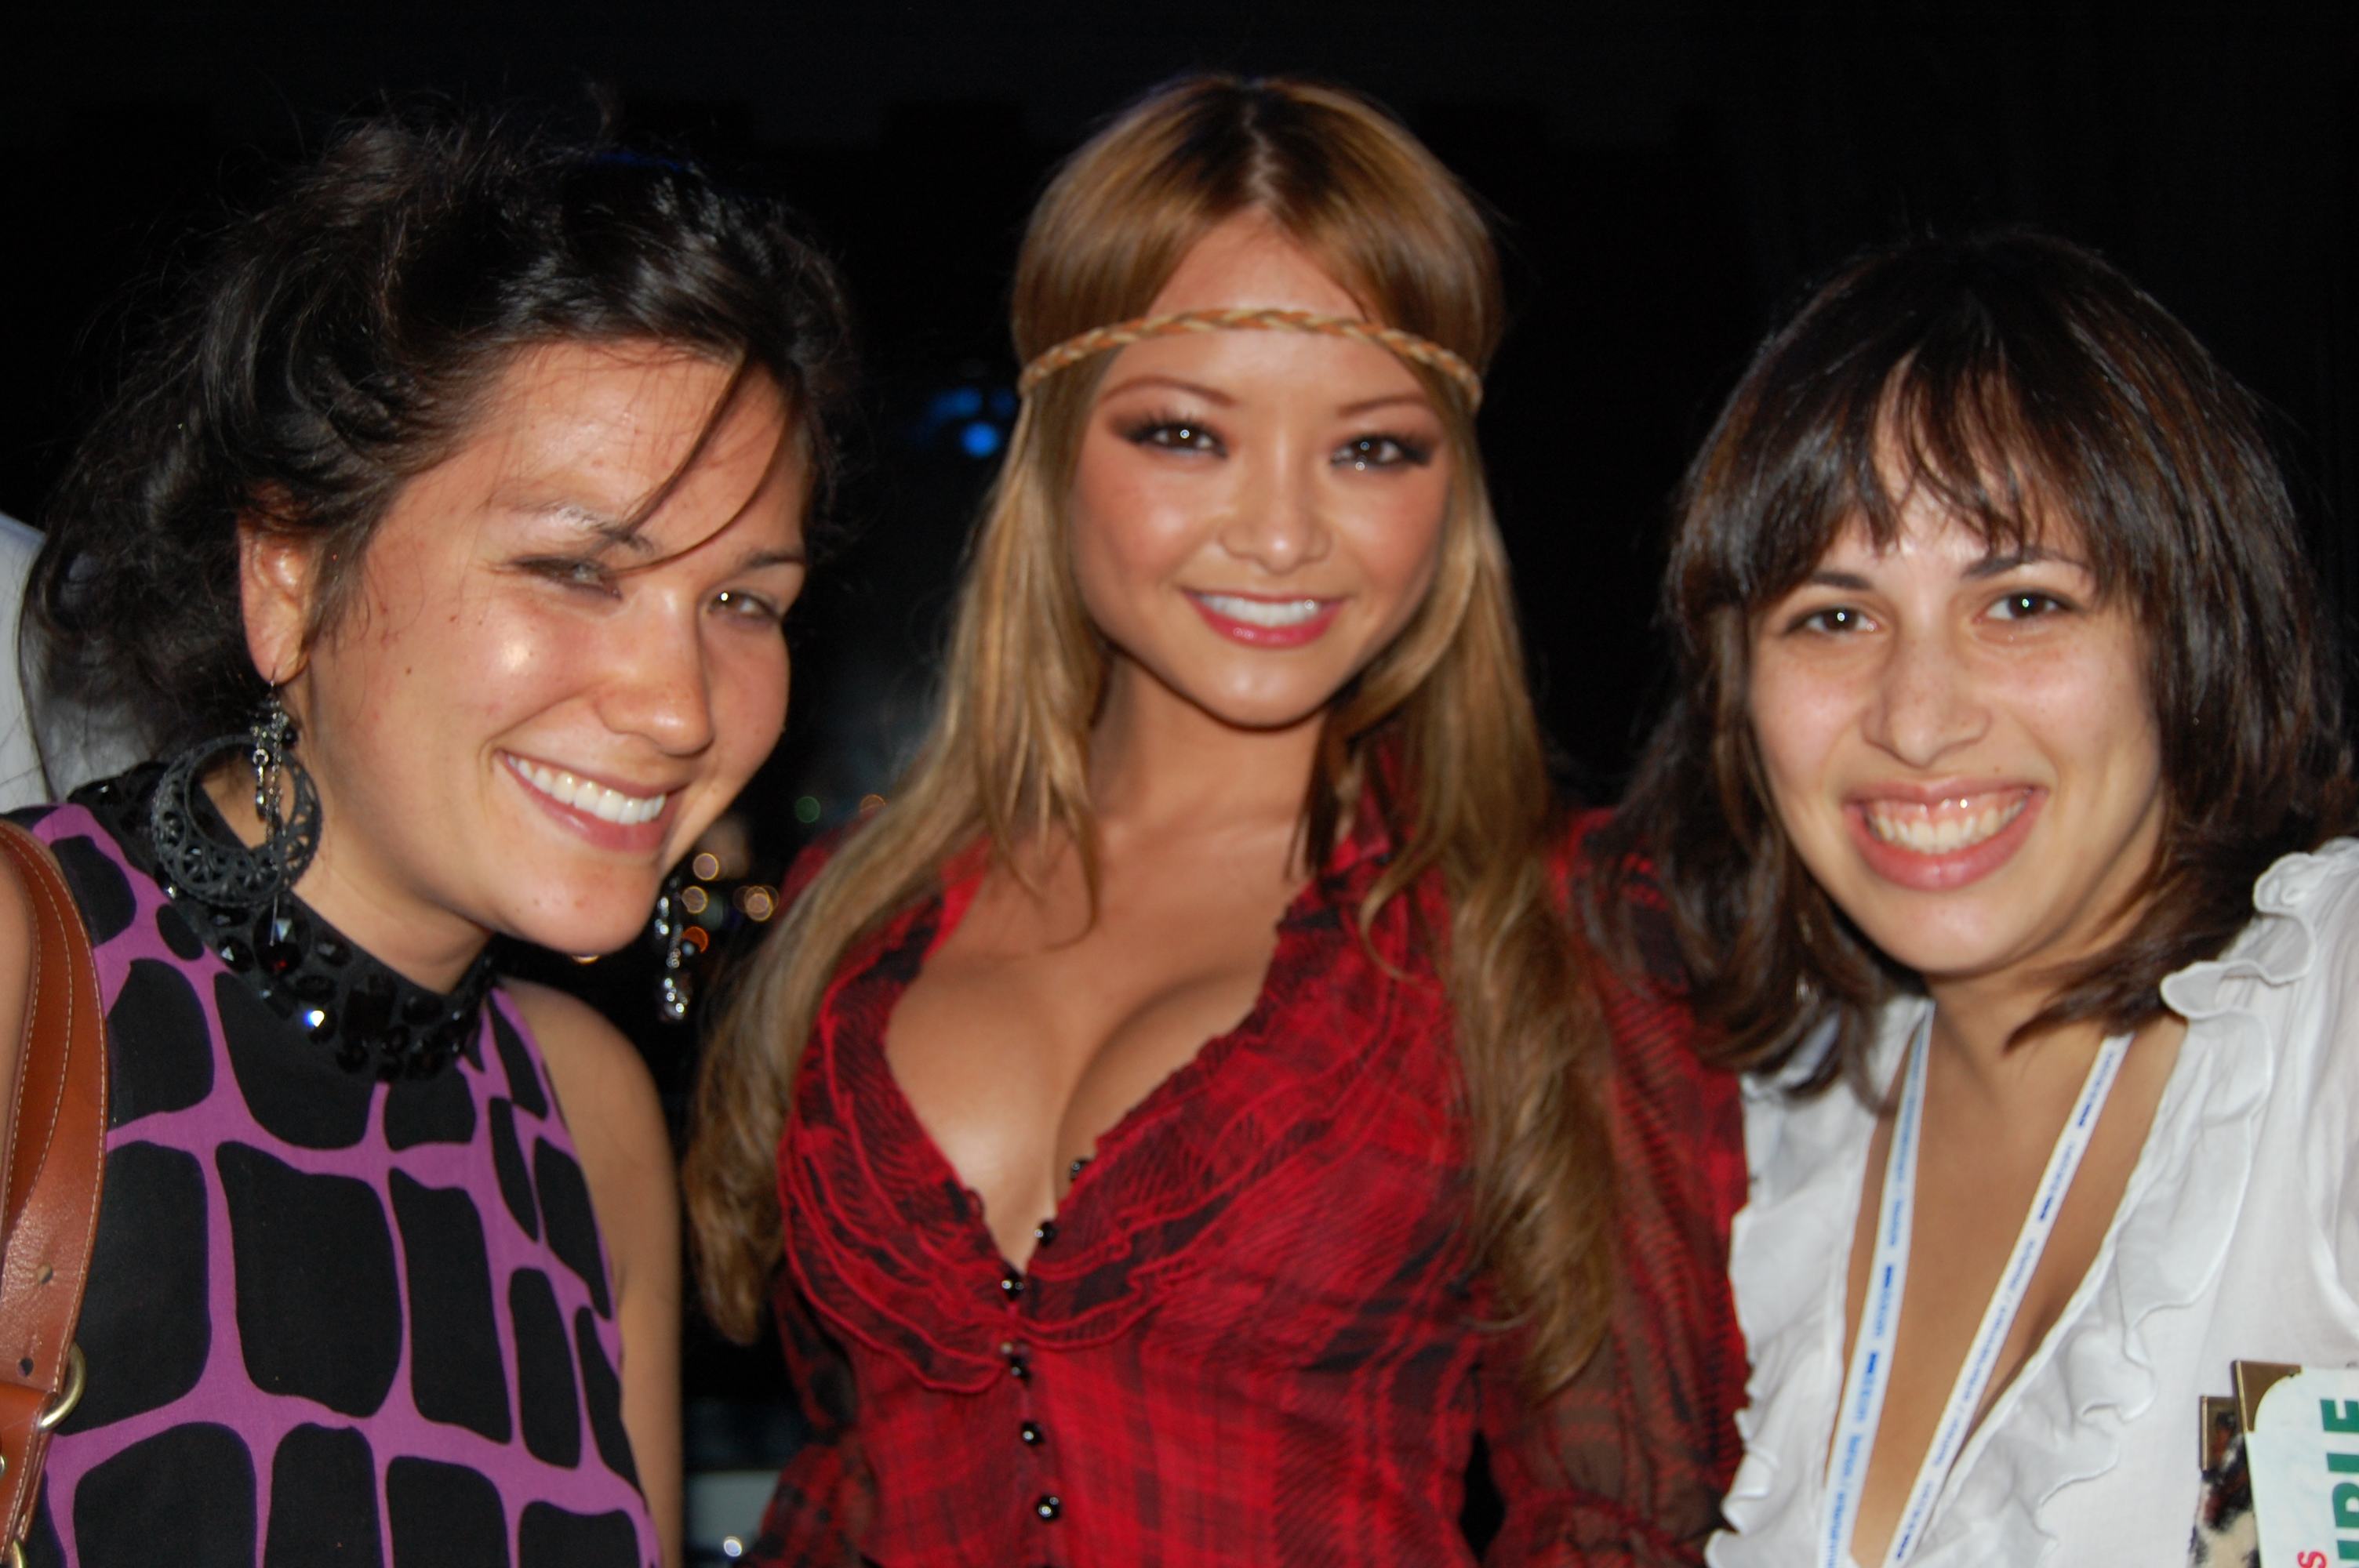 Vivid regret: Lina, Naomi and I went to a VMA after-party in 2008. Among the sea of Z-listers, in one corner, Tila Tequila was holding court. In another: Kim Kardashian (yes, she was a low-letter celeb at the time!). We wanted to get a novelty picture and chose Tila. I can't even work my mind back into the place where that seemed like the wiser move.